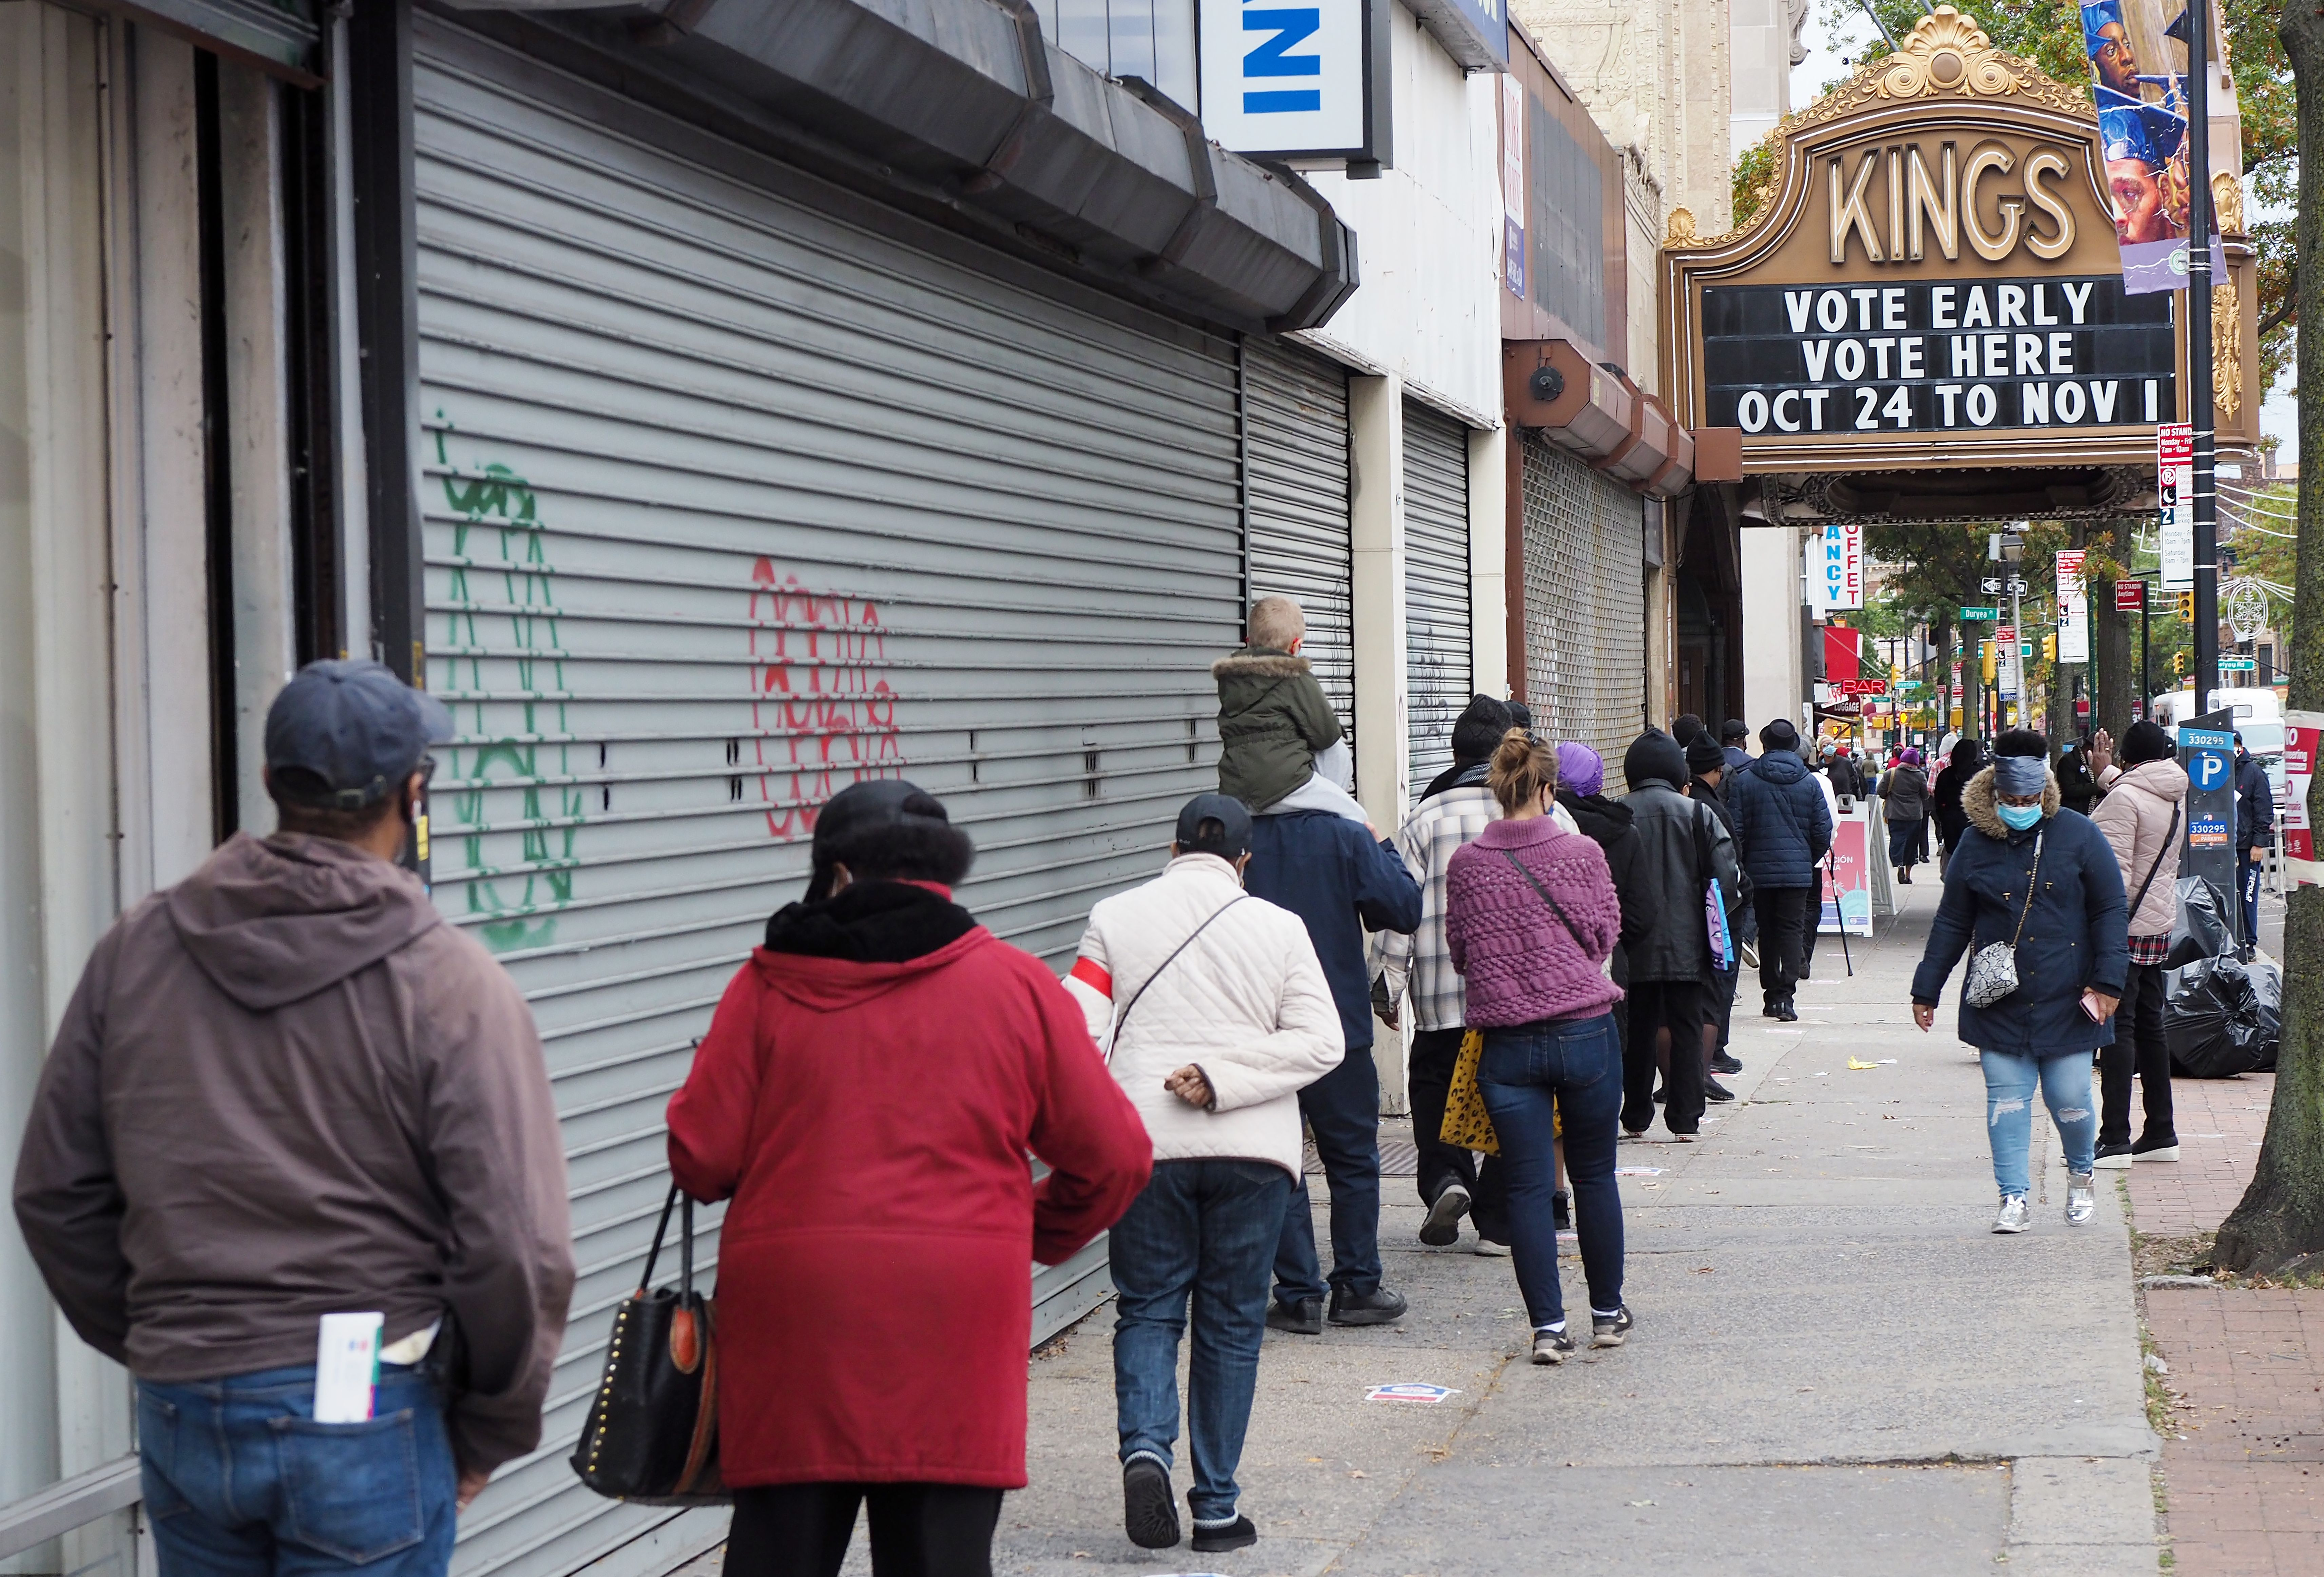 A line of voters outside the Kings Theatre in Brooklyn